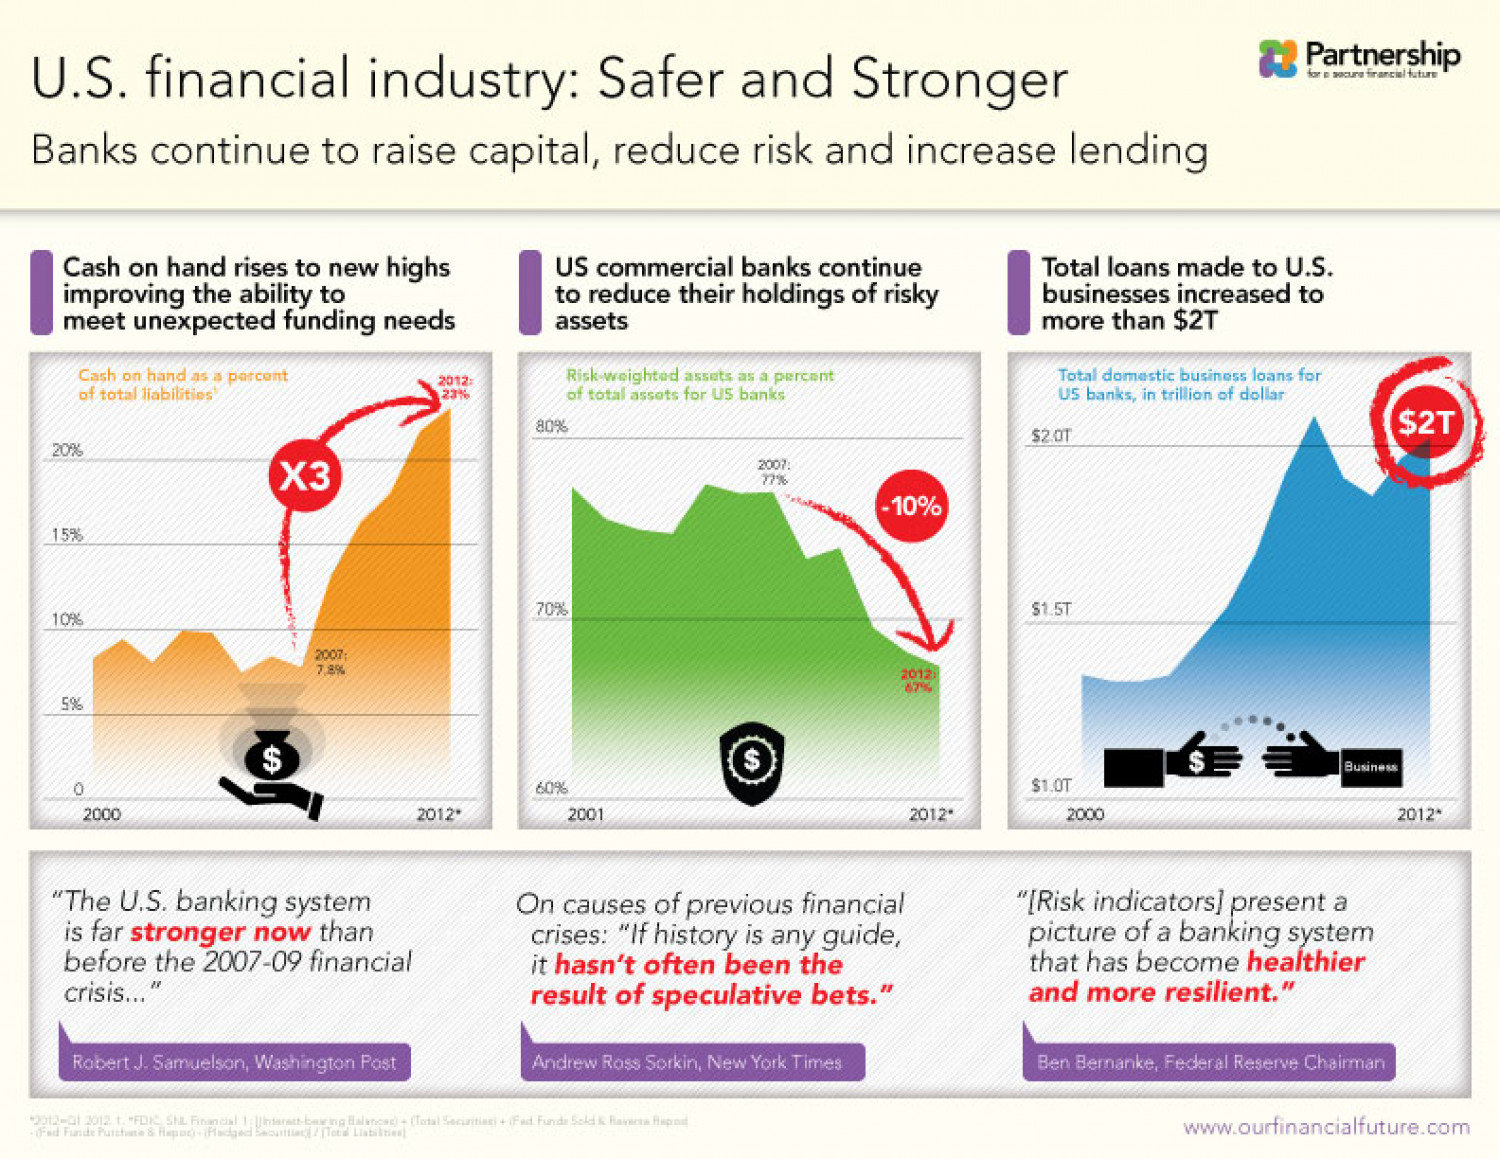 U.S. Financial Industry: Safer and Stronger Infographic